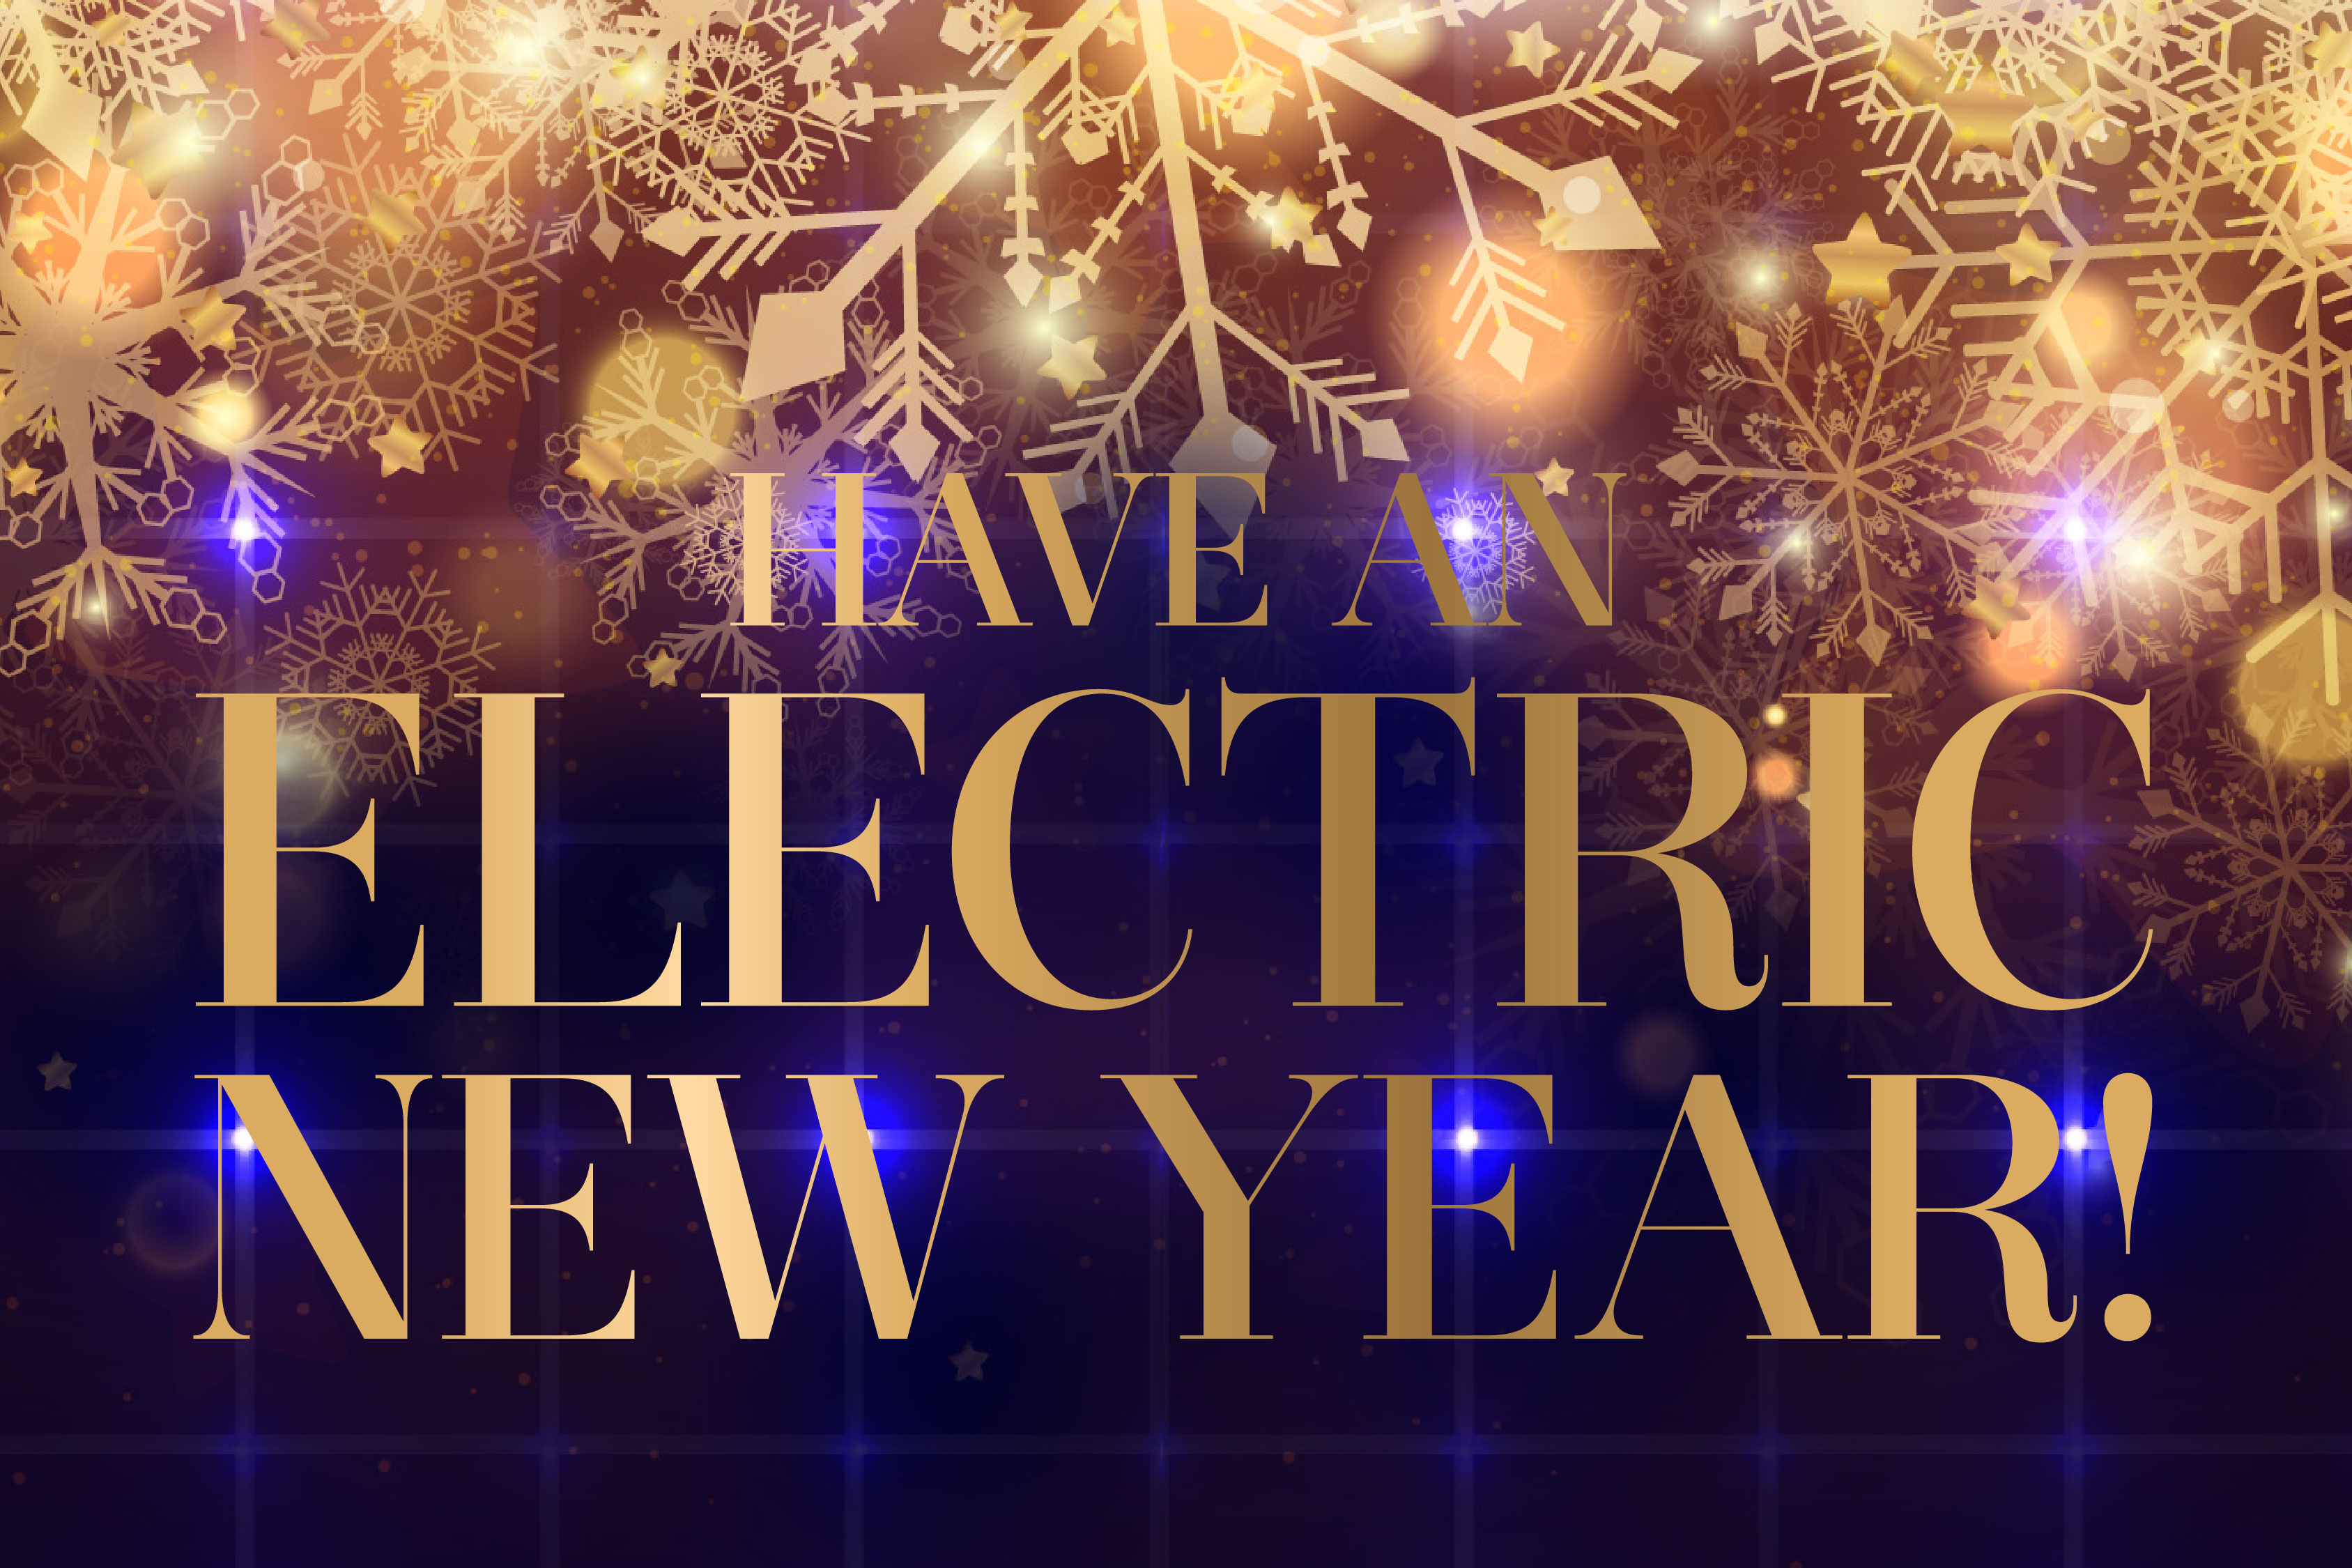 Have an Electric New Year